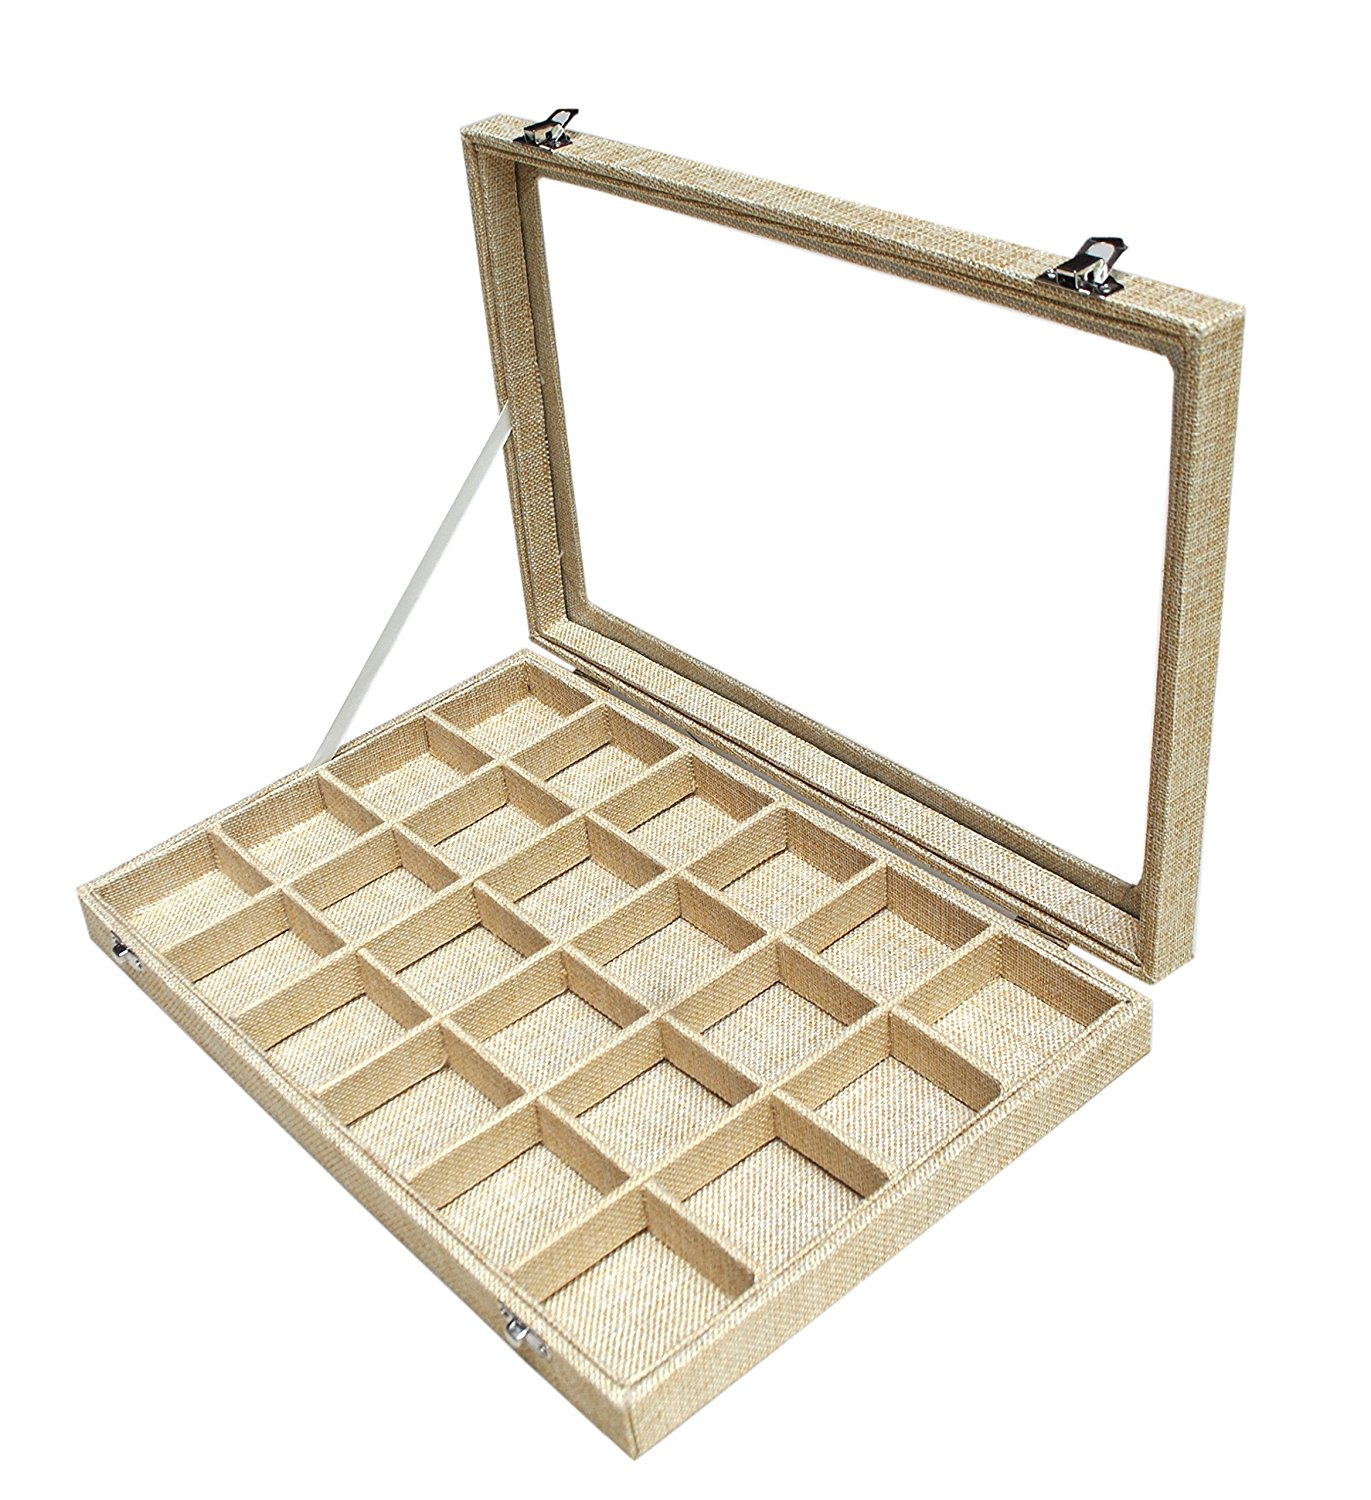 Sican Burlap Jewerly Display Travel Case Tray Showcase For Ring Pendant Earrings